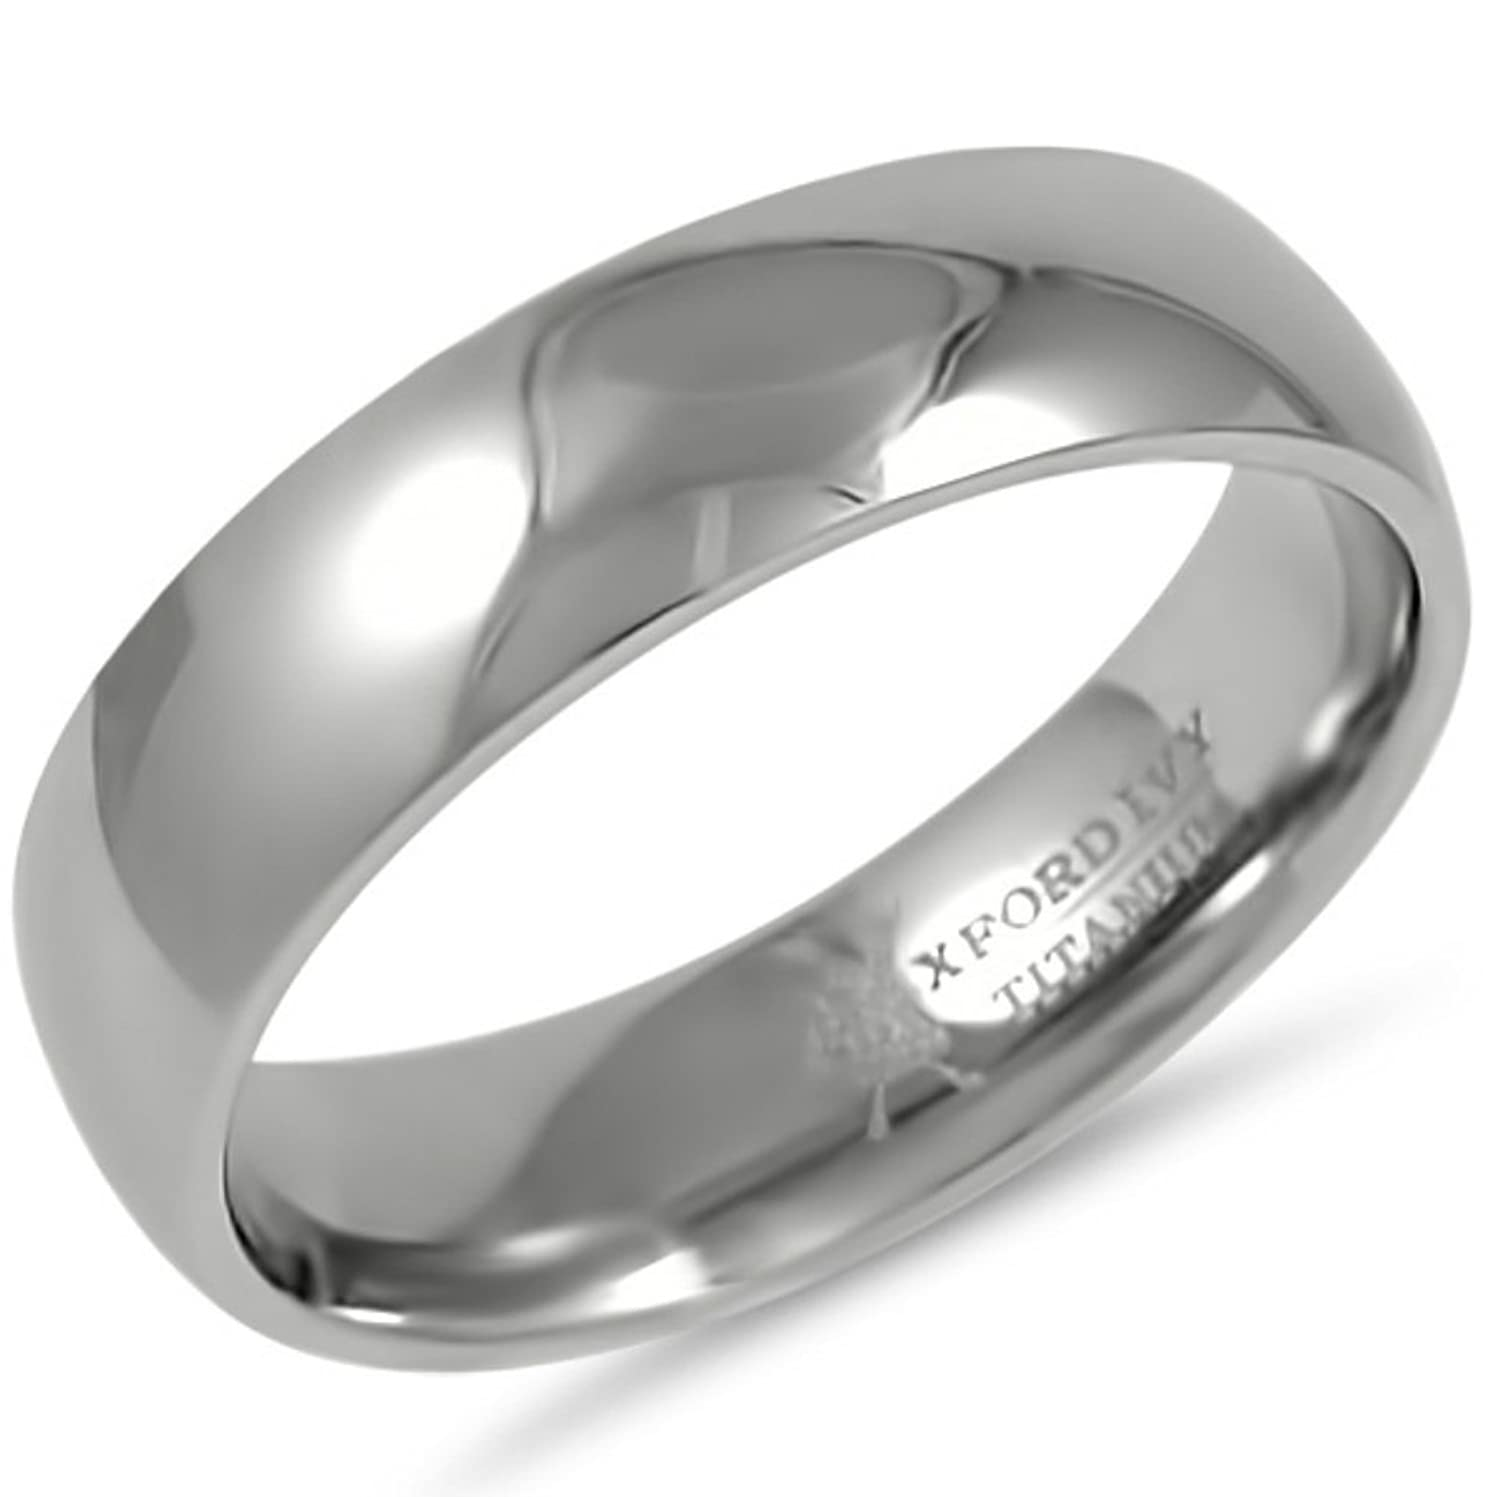 6mm Mens fort Fit Titanium Plain Wedding Band Available Ring